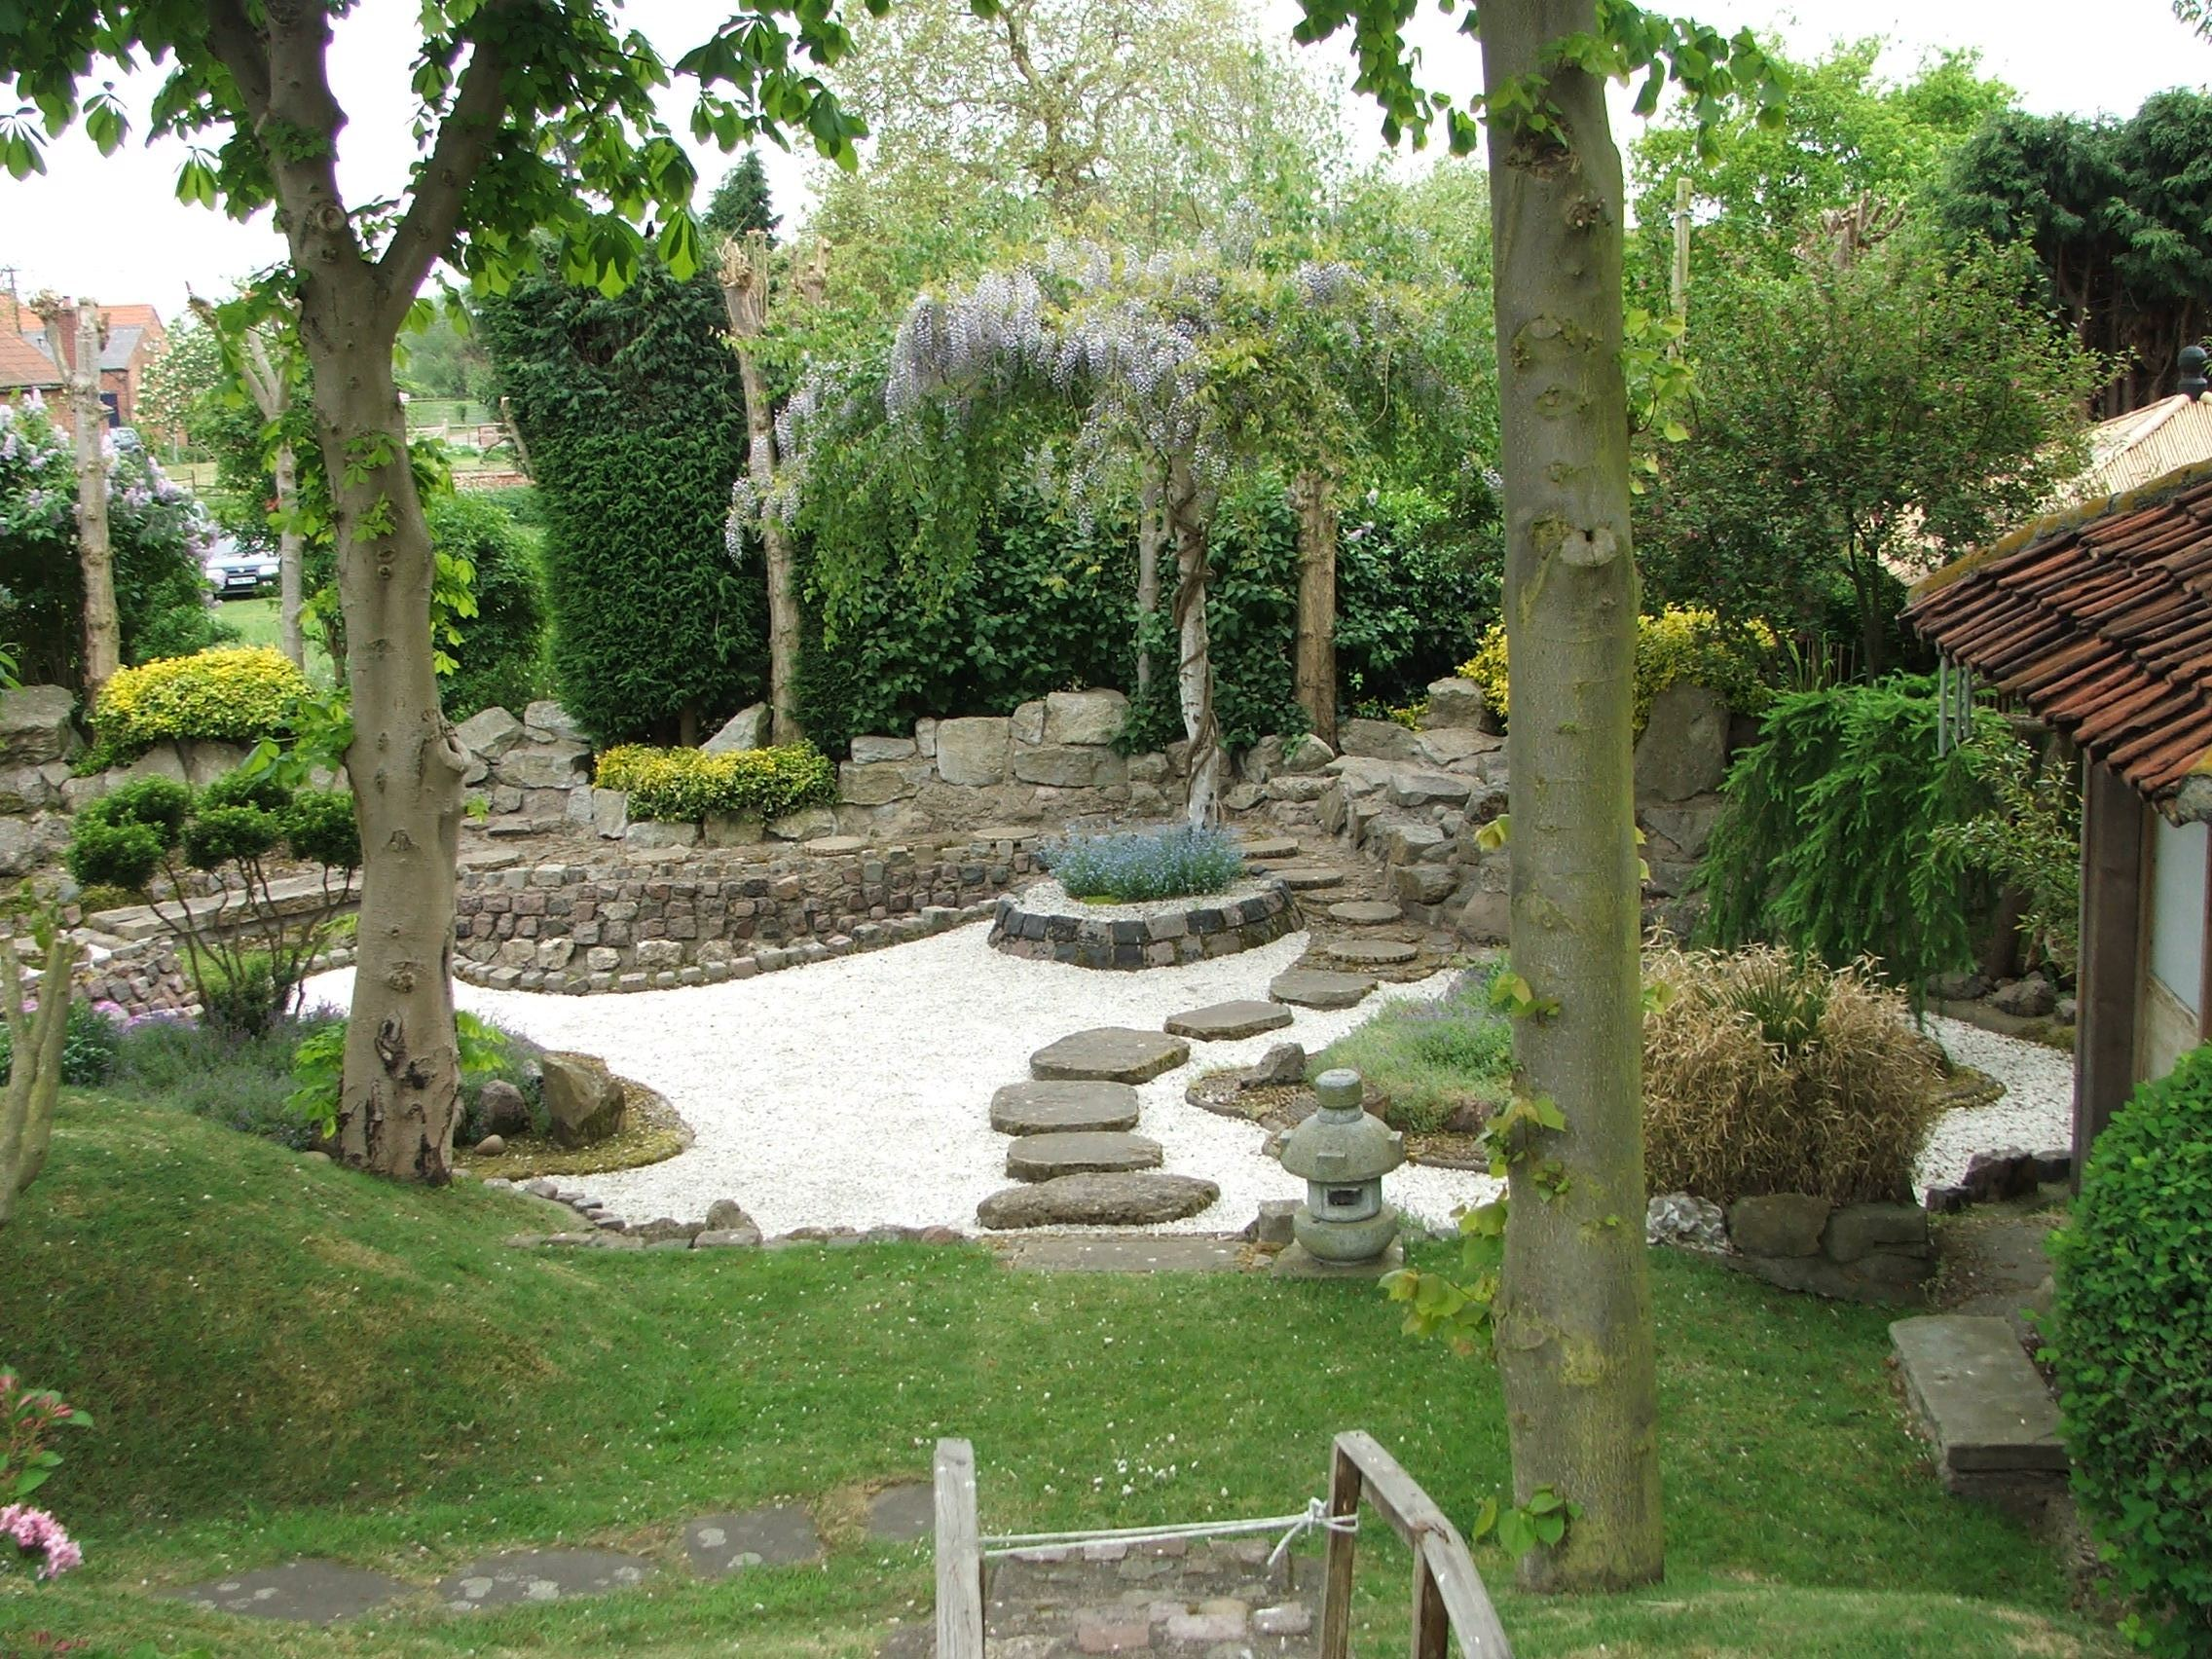 301 moved permanently - Japanese garden ...